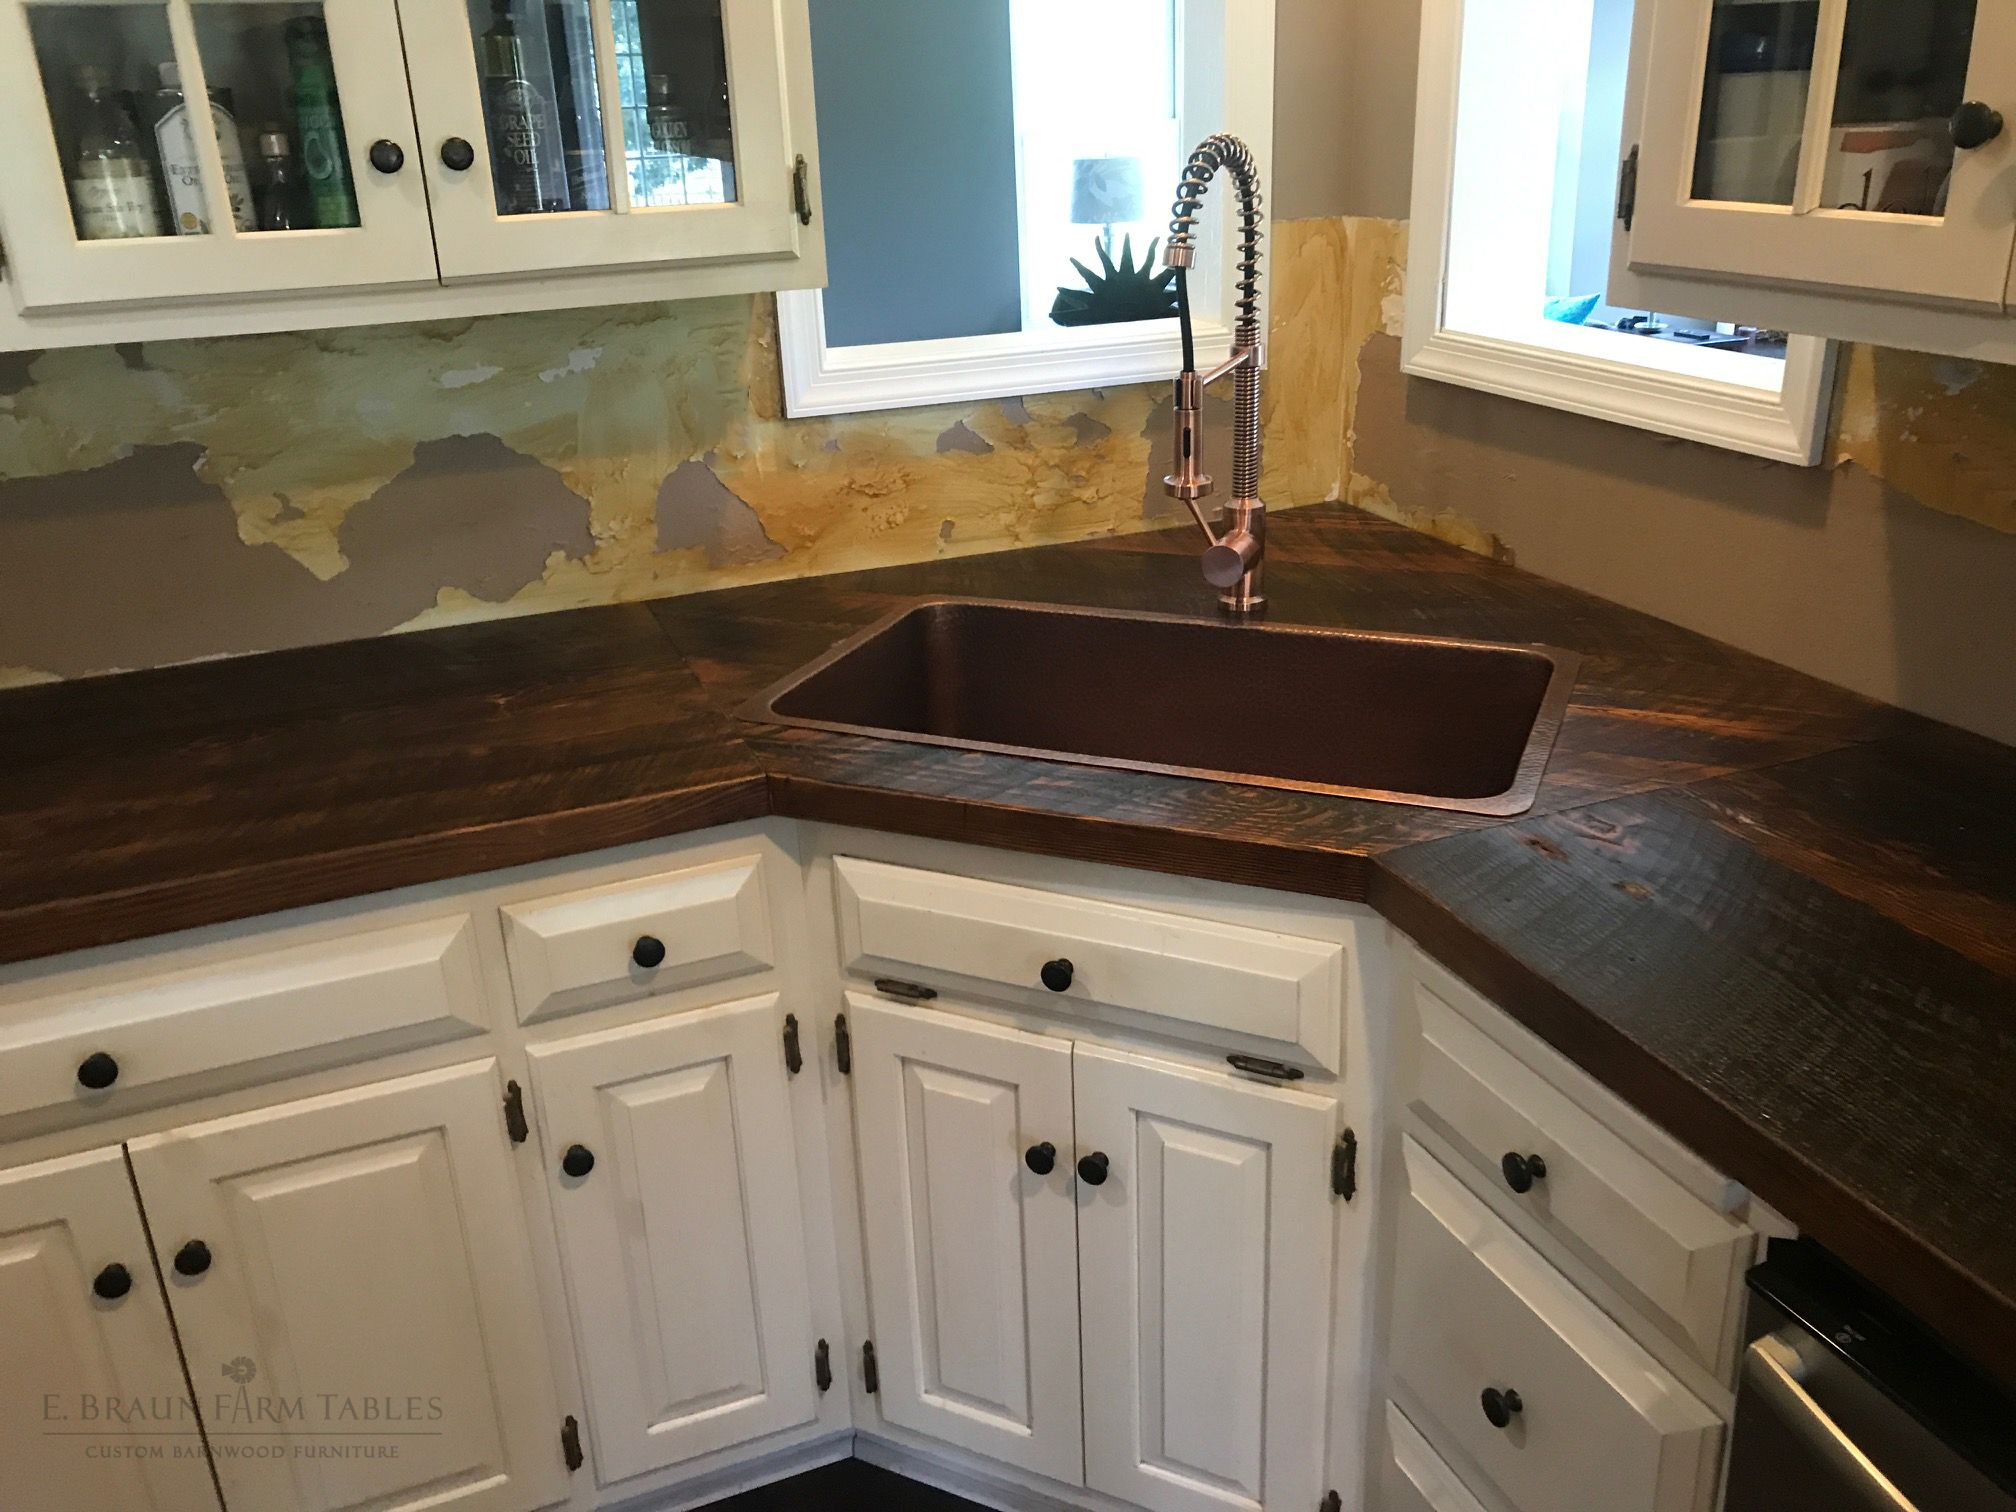 Barnwood Countertops Custom Made For Existing Kitchen Cabinetry Reclaimed Wood From Dismantled Barns And Discount Kitchen Cabinets Kitchen Renovation Kitchen